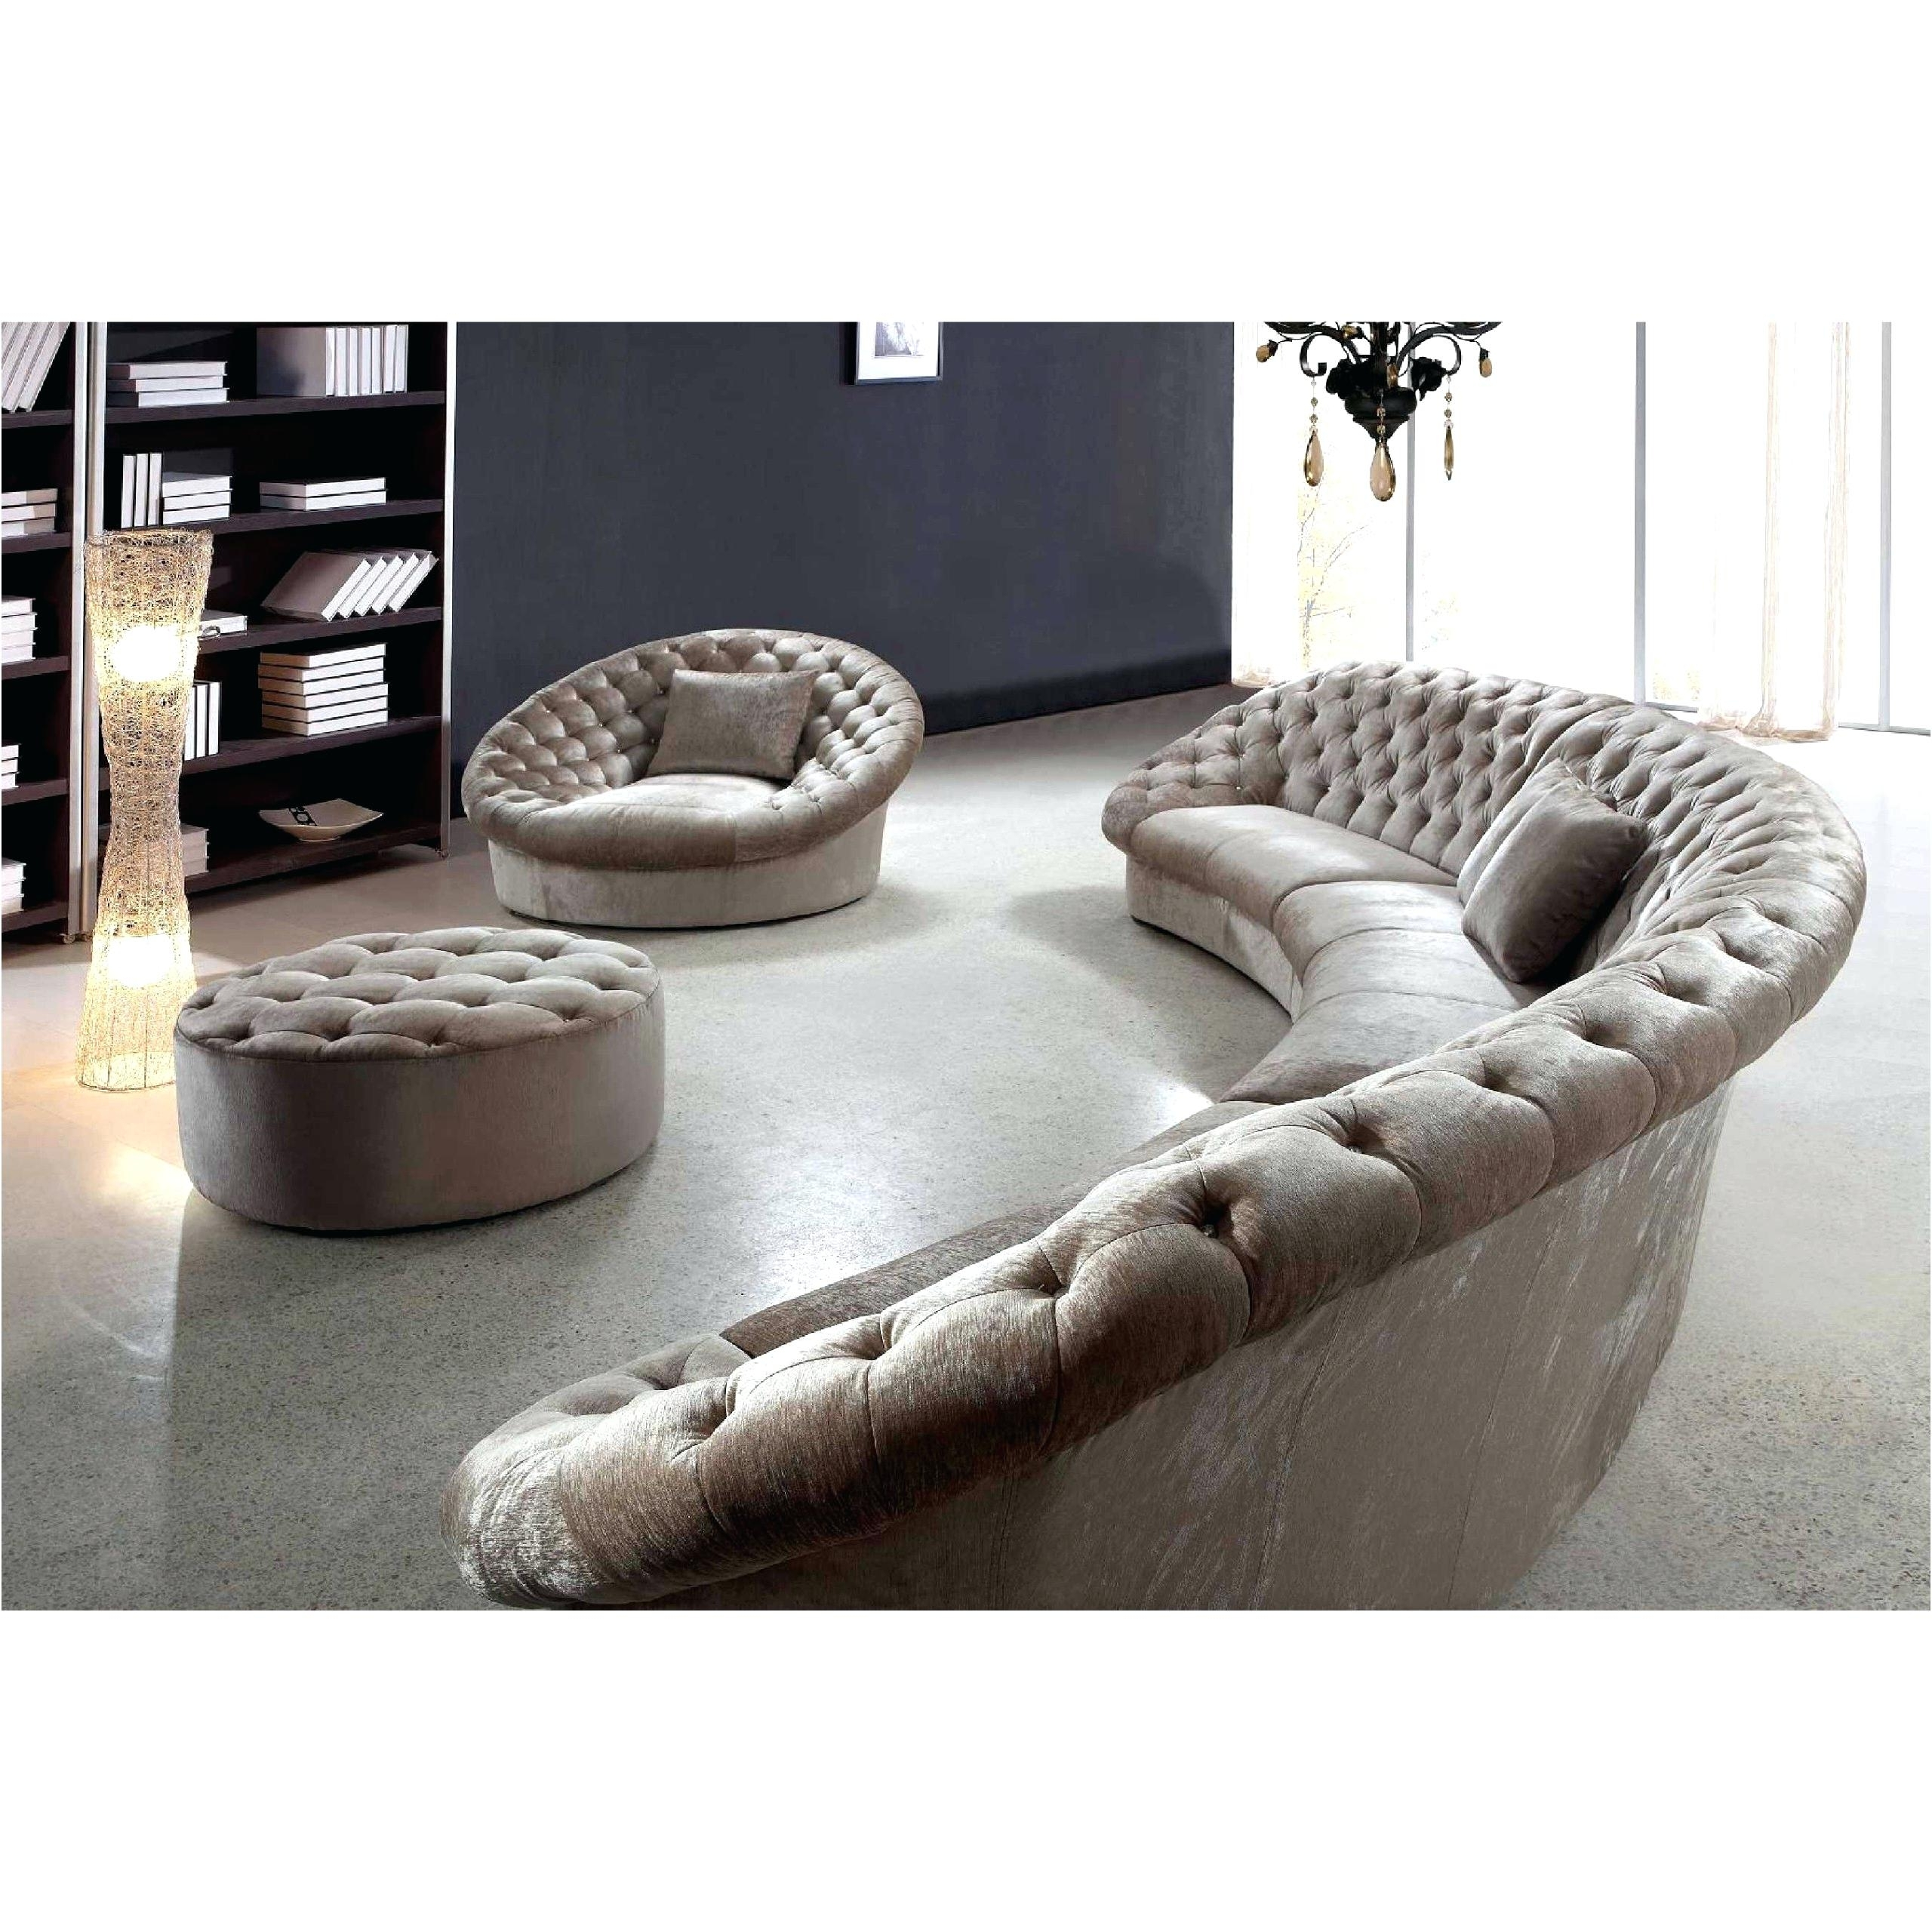 Widely Used Round Sofas Pertaining To Circular Sectional Sofa Modern Round Sofas Semi Circle Rounded (View 15 of 20)